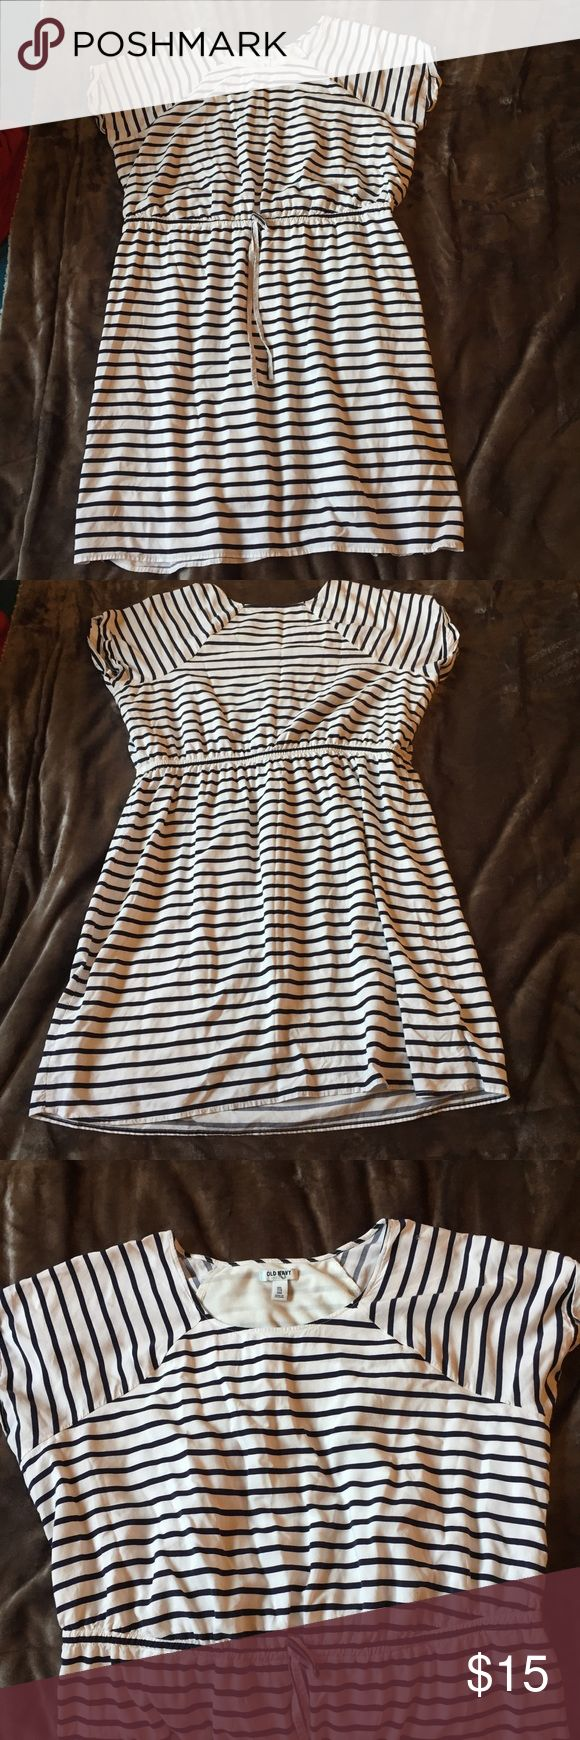 Old Navy White & Navy Striped Dress Cute navy & white horizontal striped shirt sleeve dress with tie at waist. Small hole on top of the sleeve as pictured, but otherwise in great condition and fully lined! Old Navy Dresses